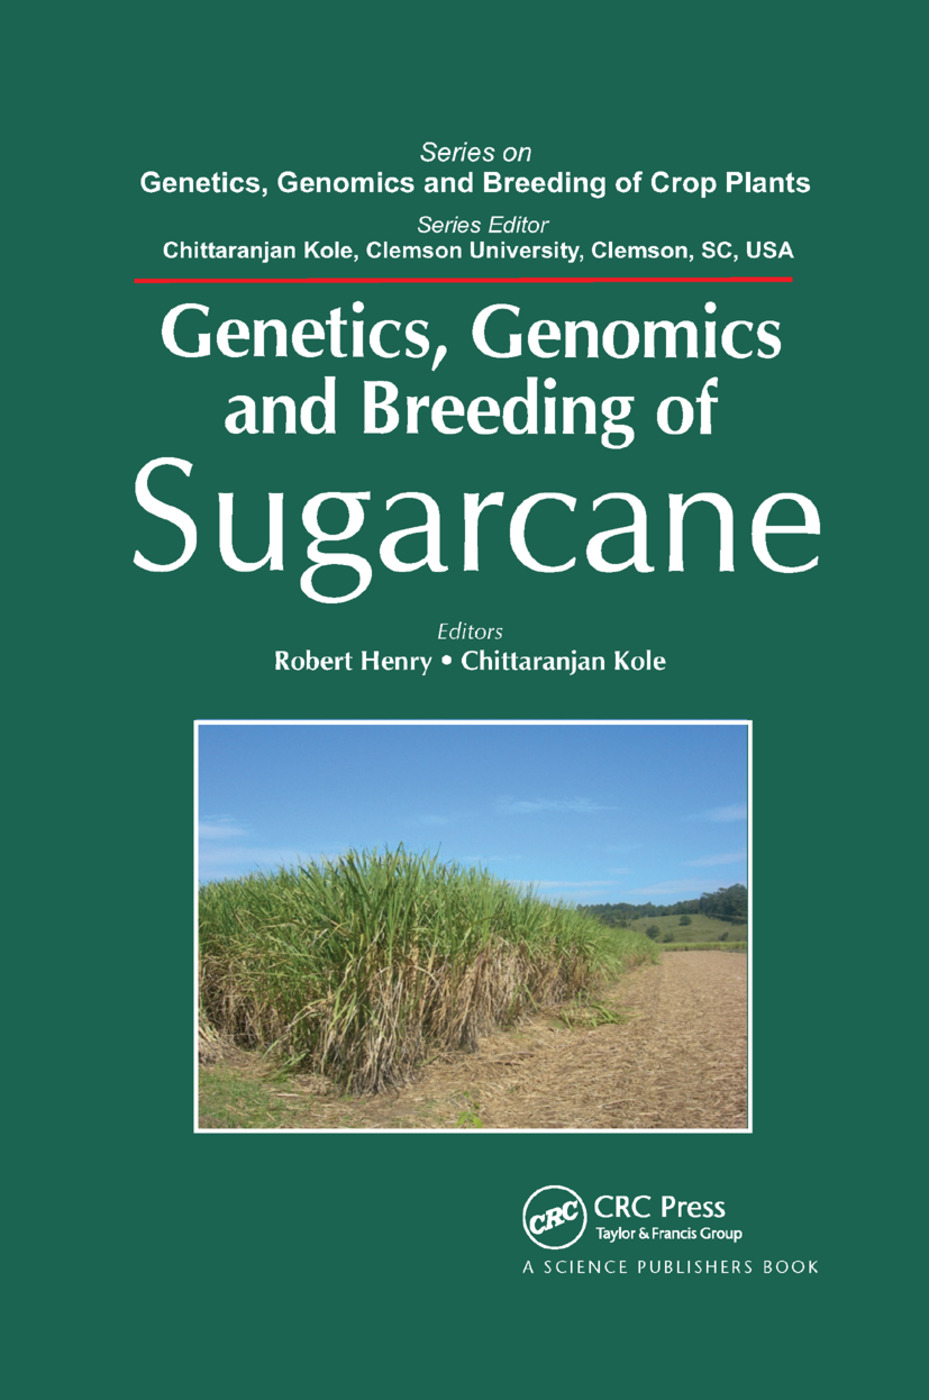 Genetics, Genomics and Breeding of Sugarcane: 1st Edition (Paperback) book cover